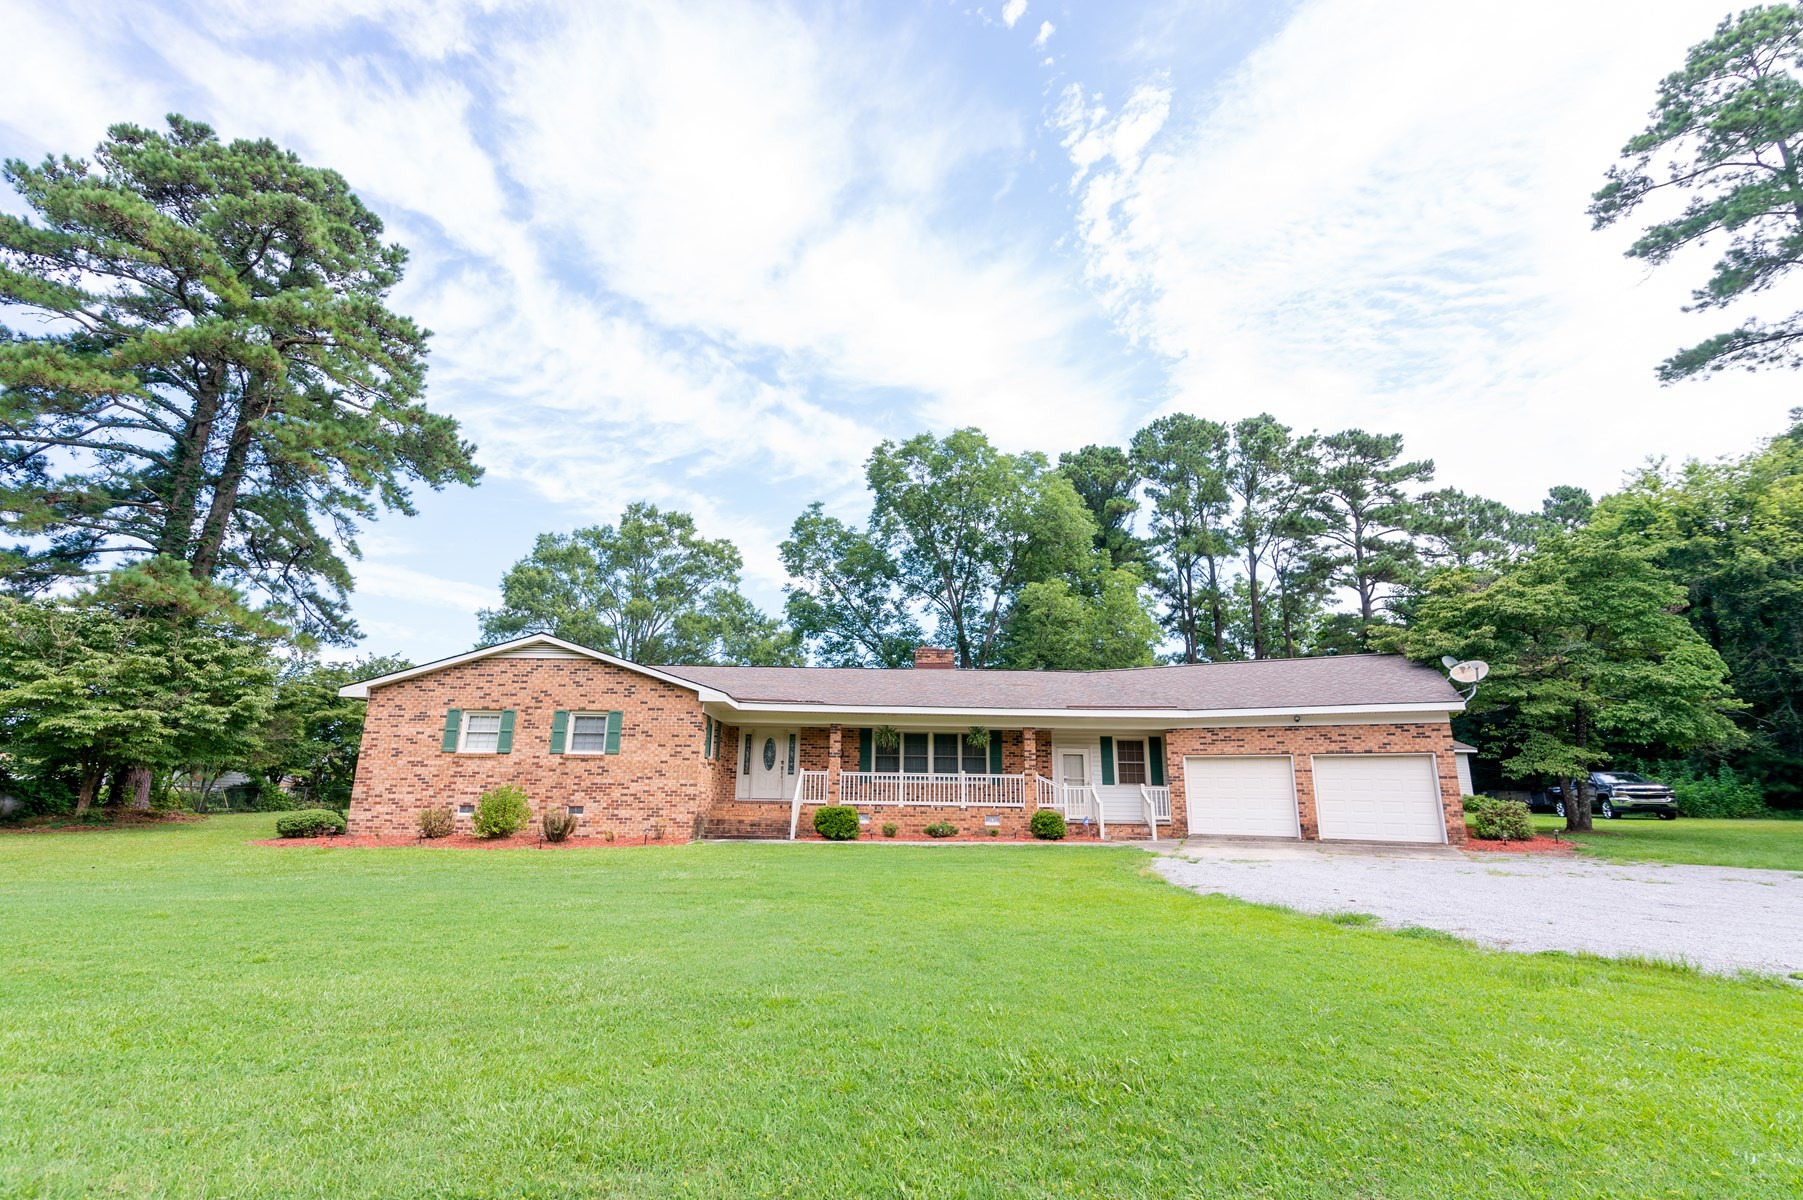 Brick rancher on a 1 acre lot